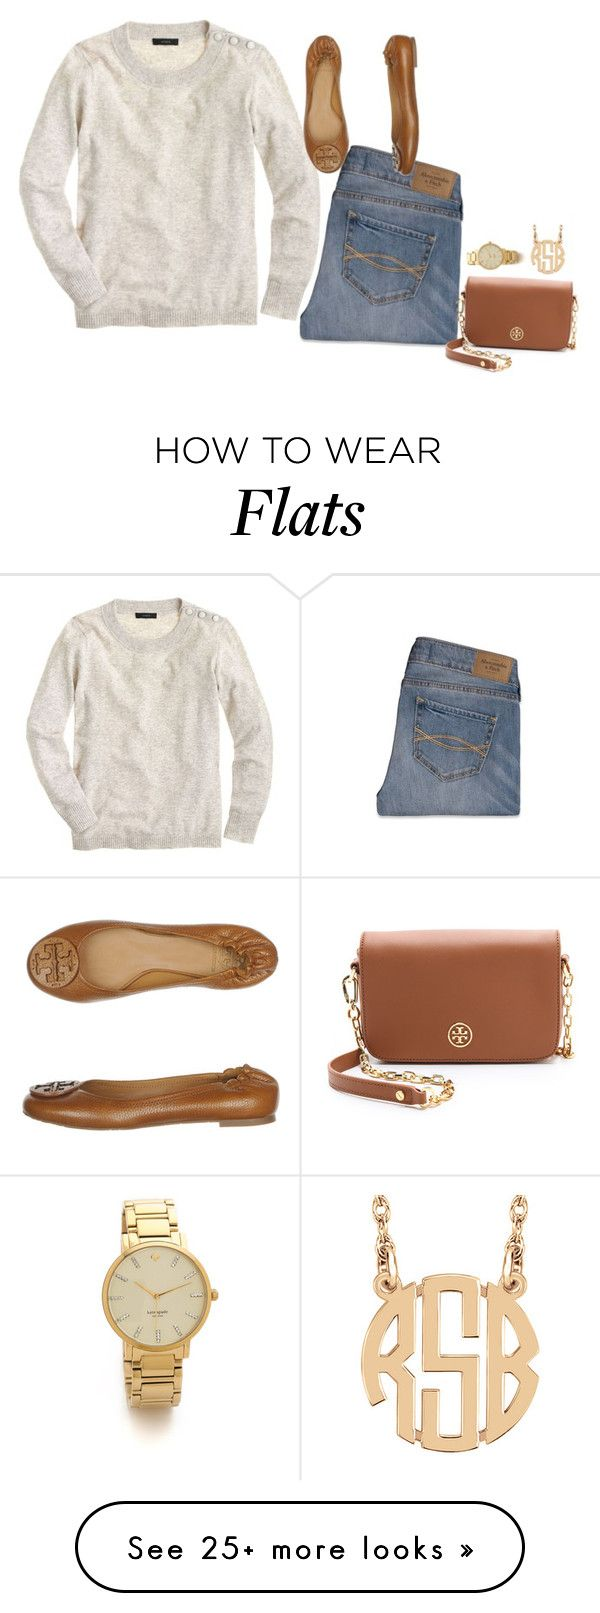 """Untitled #685"" by sassy-and-southern on Polyvore featuring J.Crew, Abercrombie & Fitch, Tory Burch, Kate Spade and sassysouthernwinter"